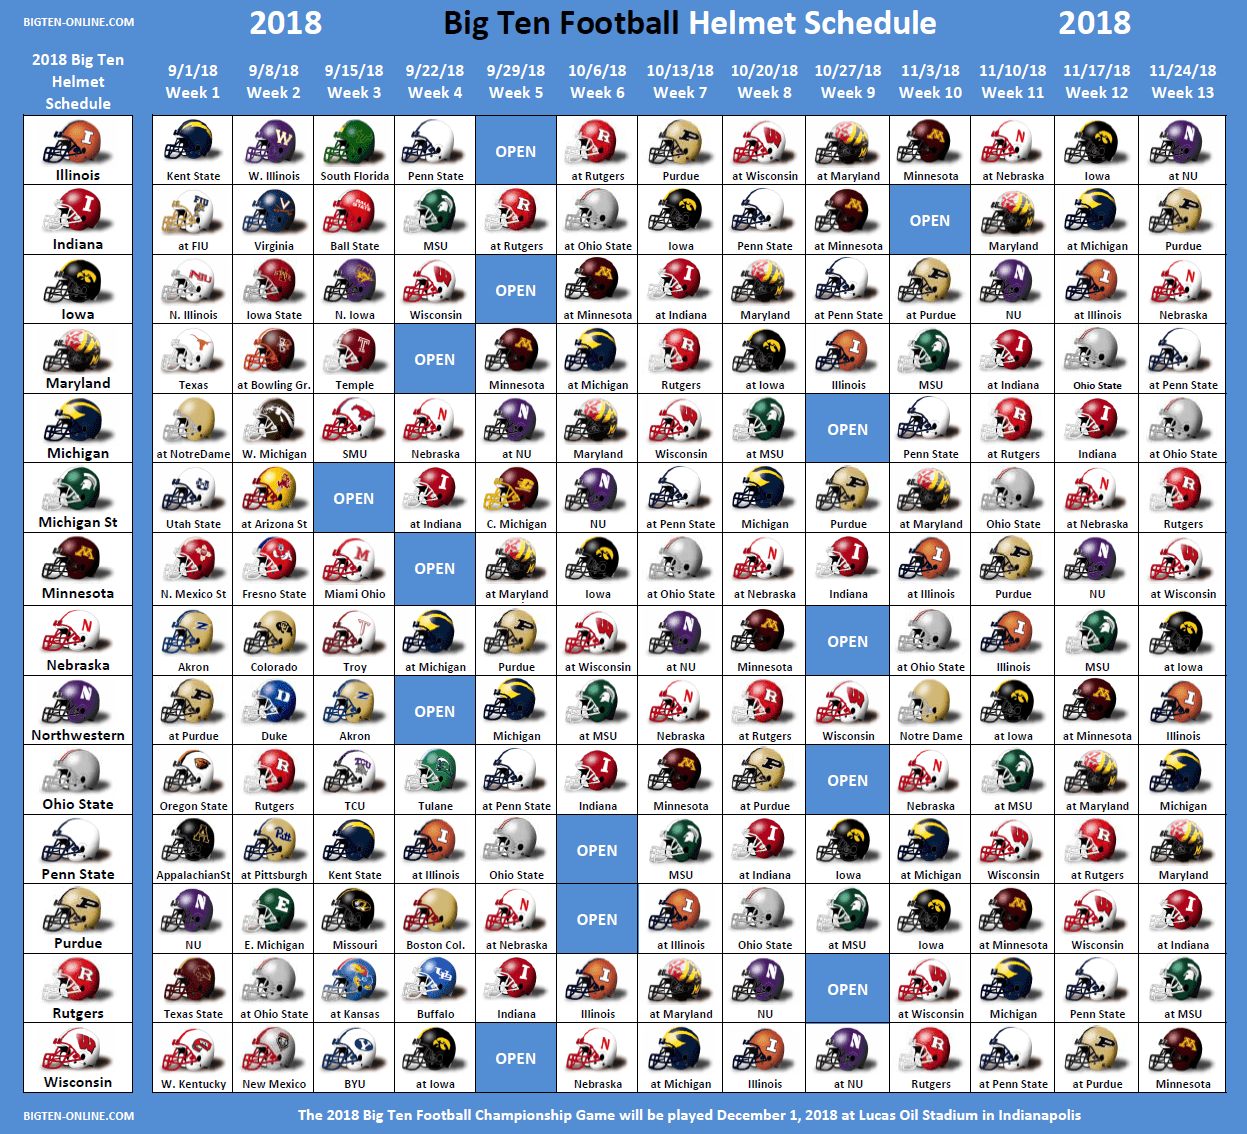 2018 Big Ten Football Helmet Schedule